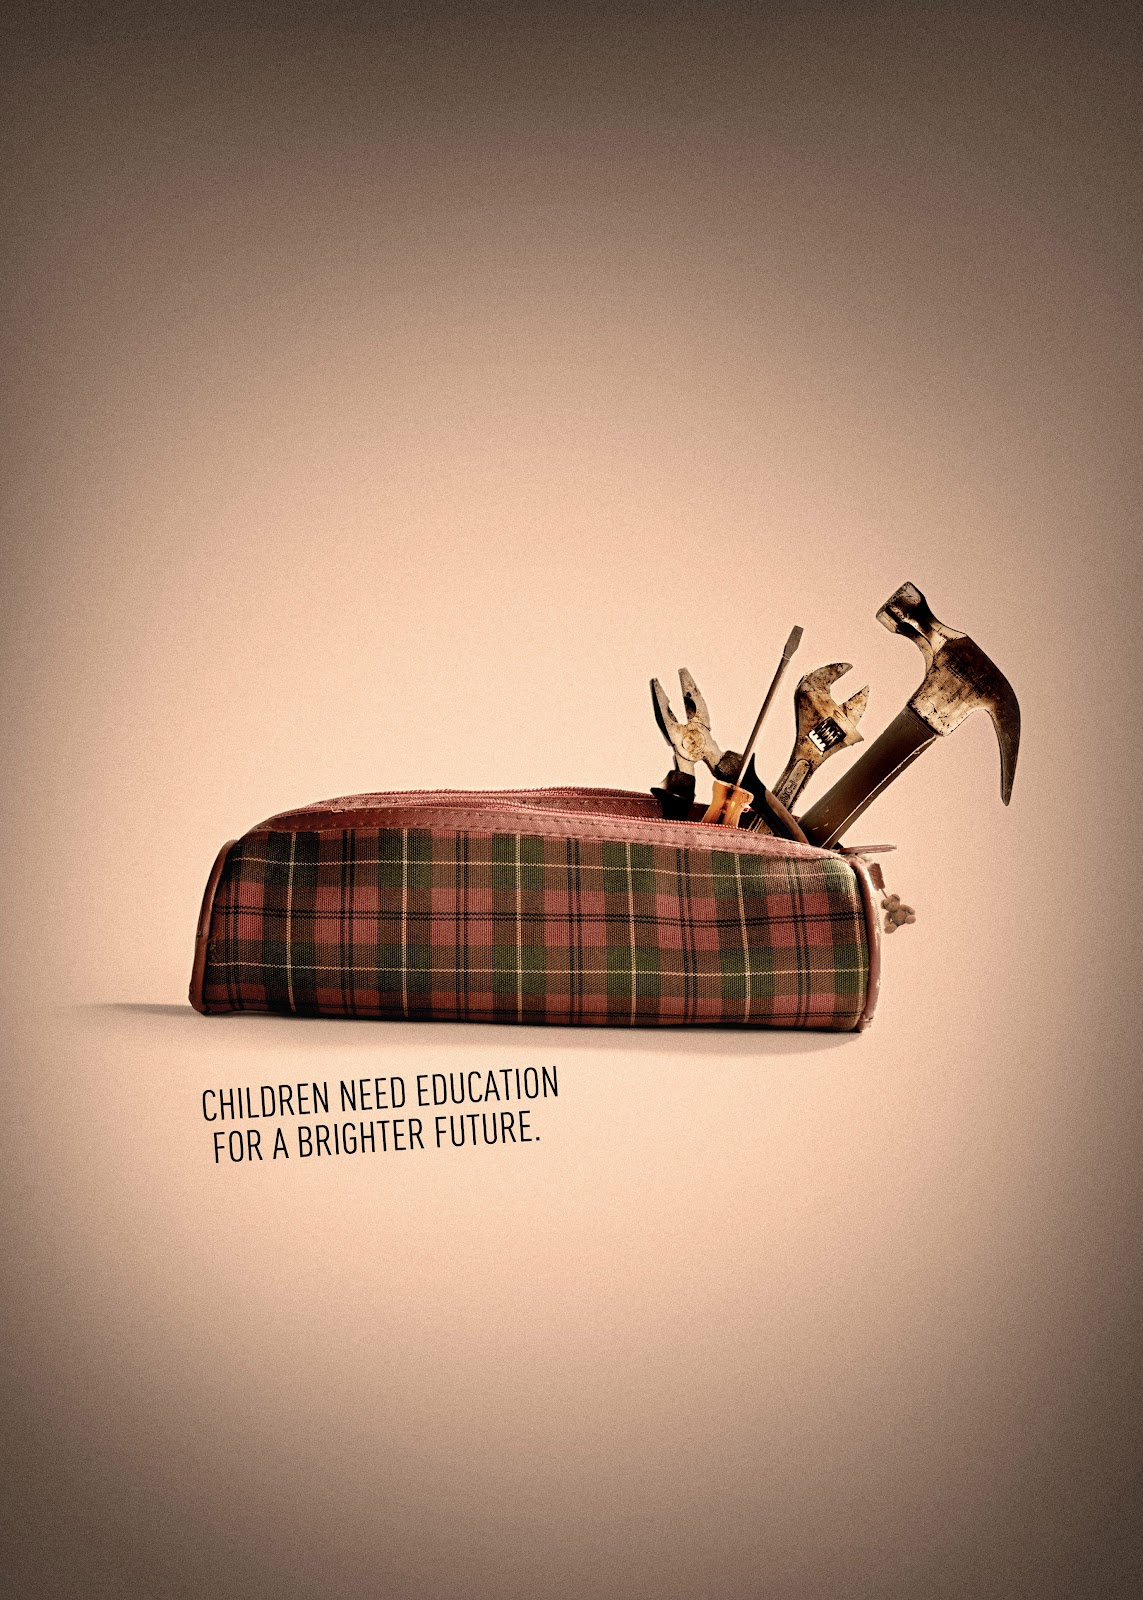 Mind Blowing Resources: 30 Mind Blowing Posters Against Child Labour